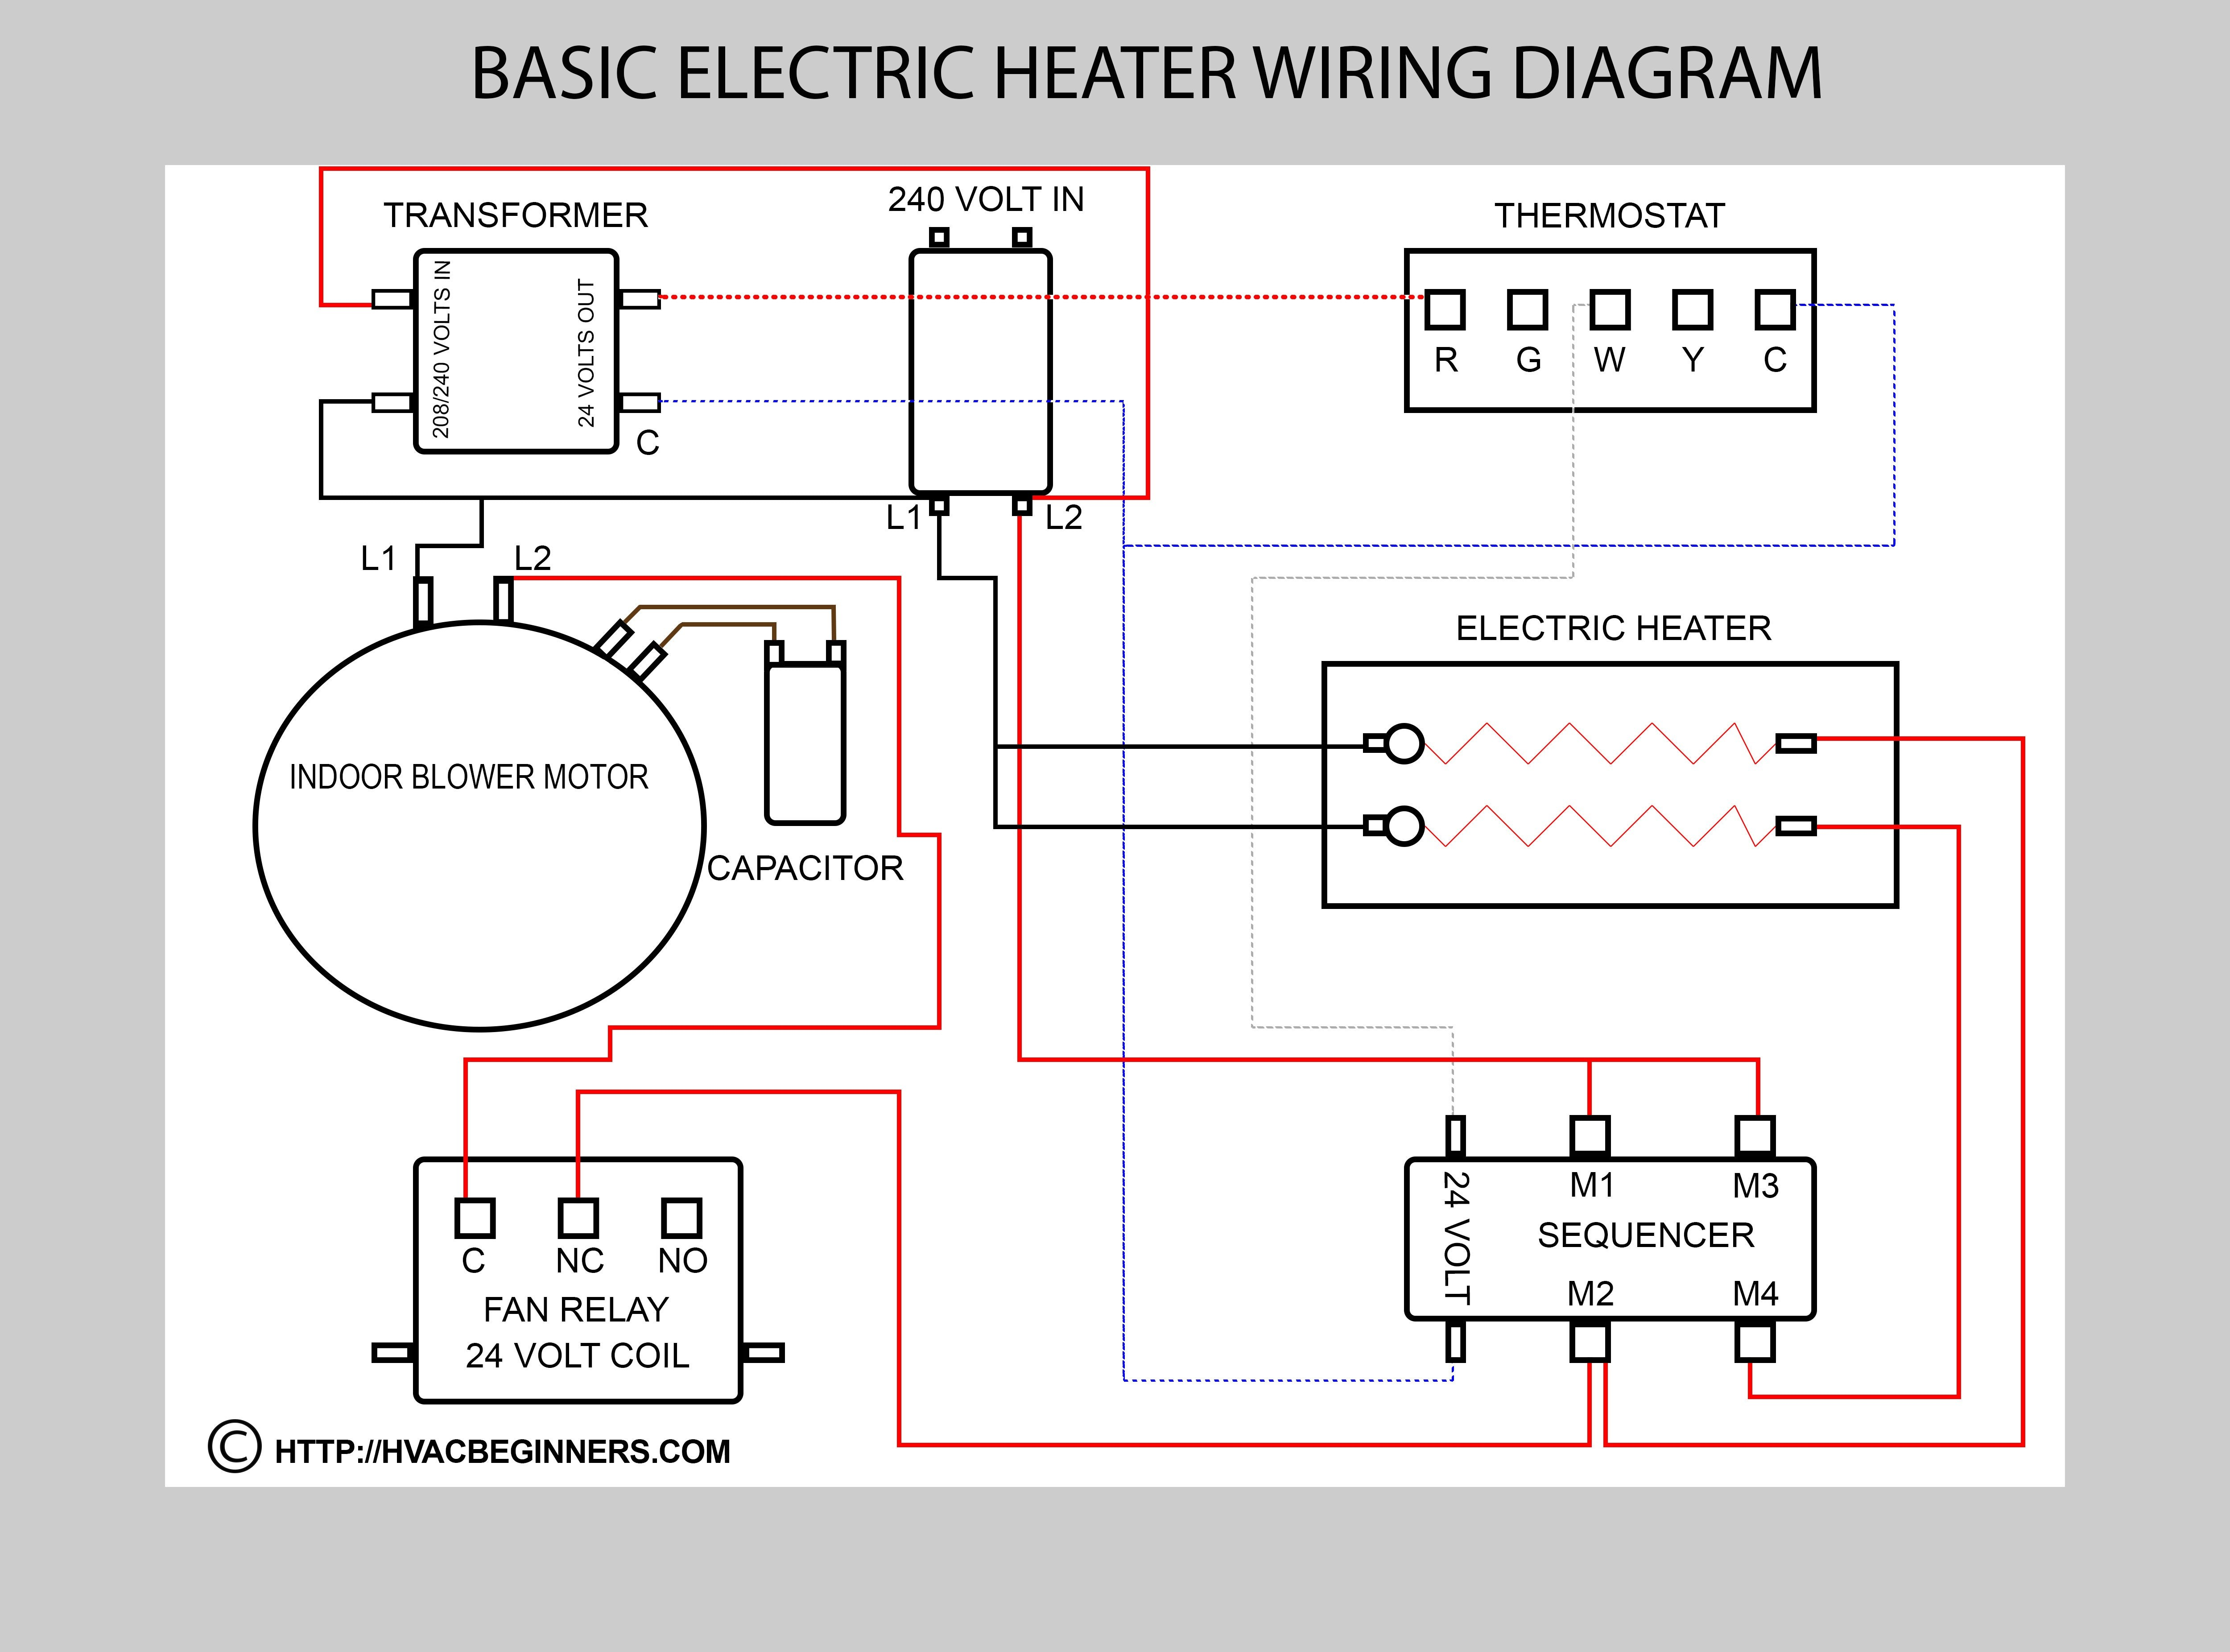 Wiring Diagram Overcurrent Relay Best Split System Air Conditioner Wiring Diagram Hvac Wire Central and